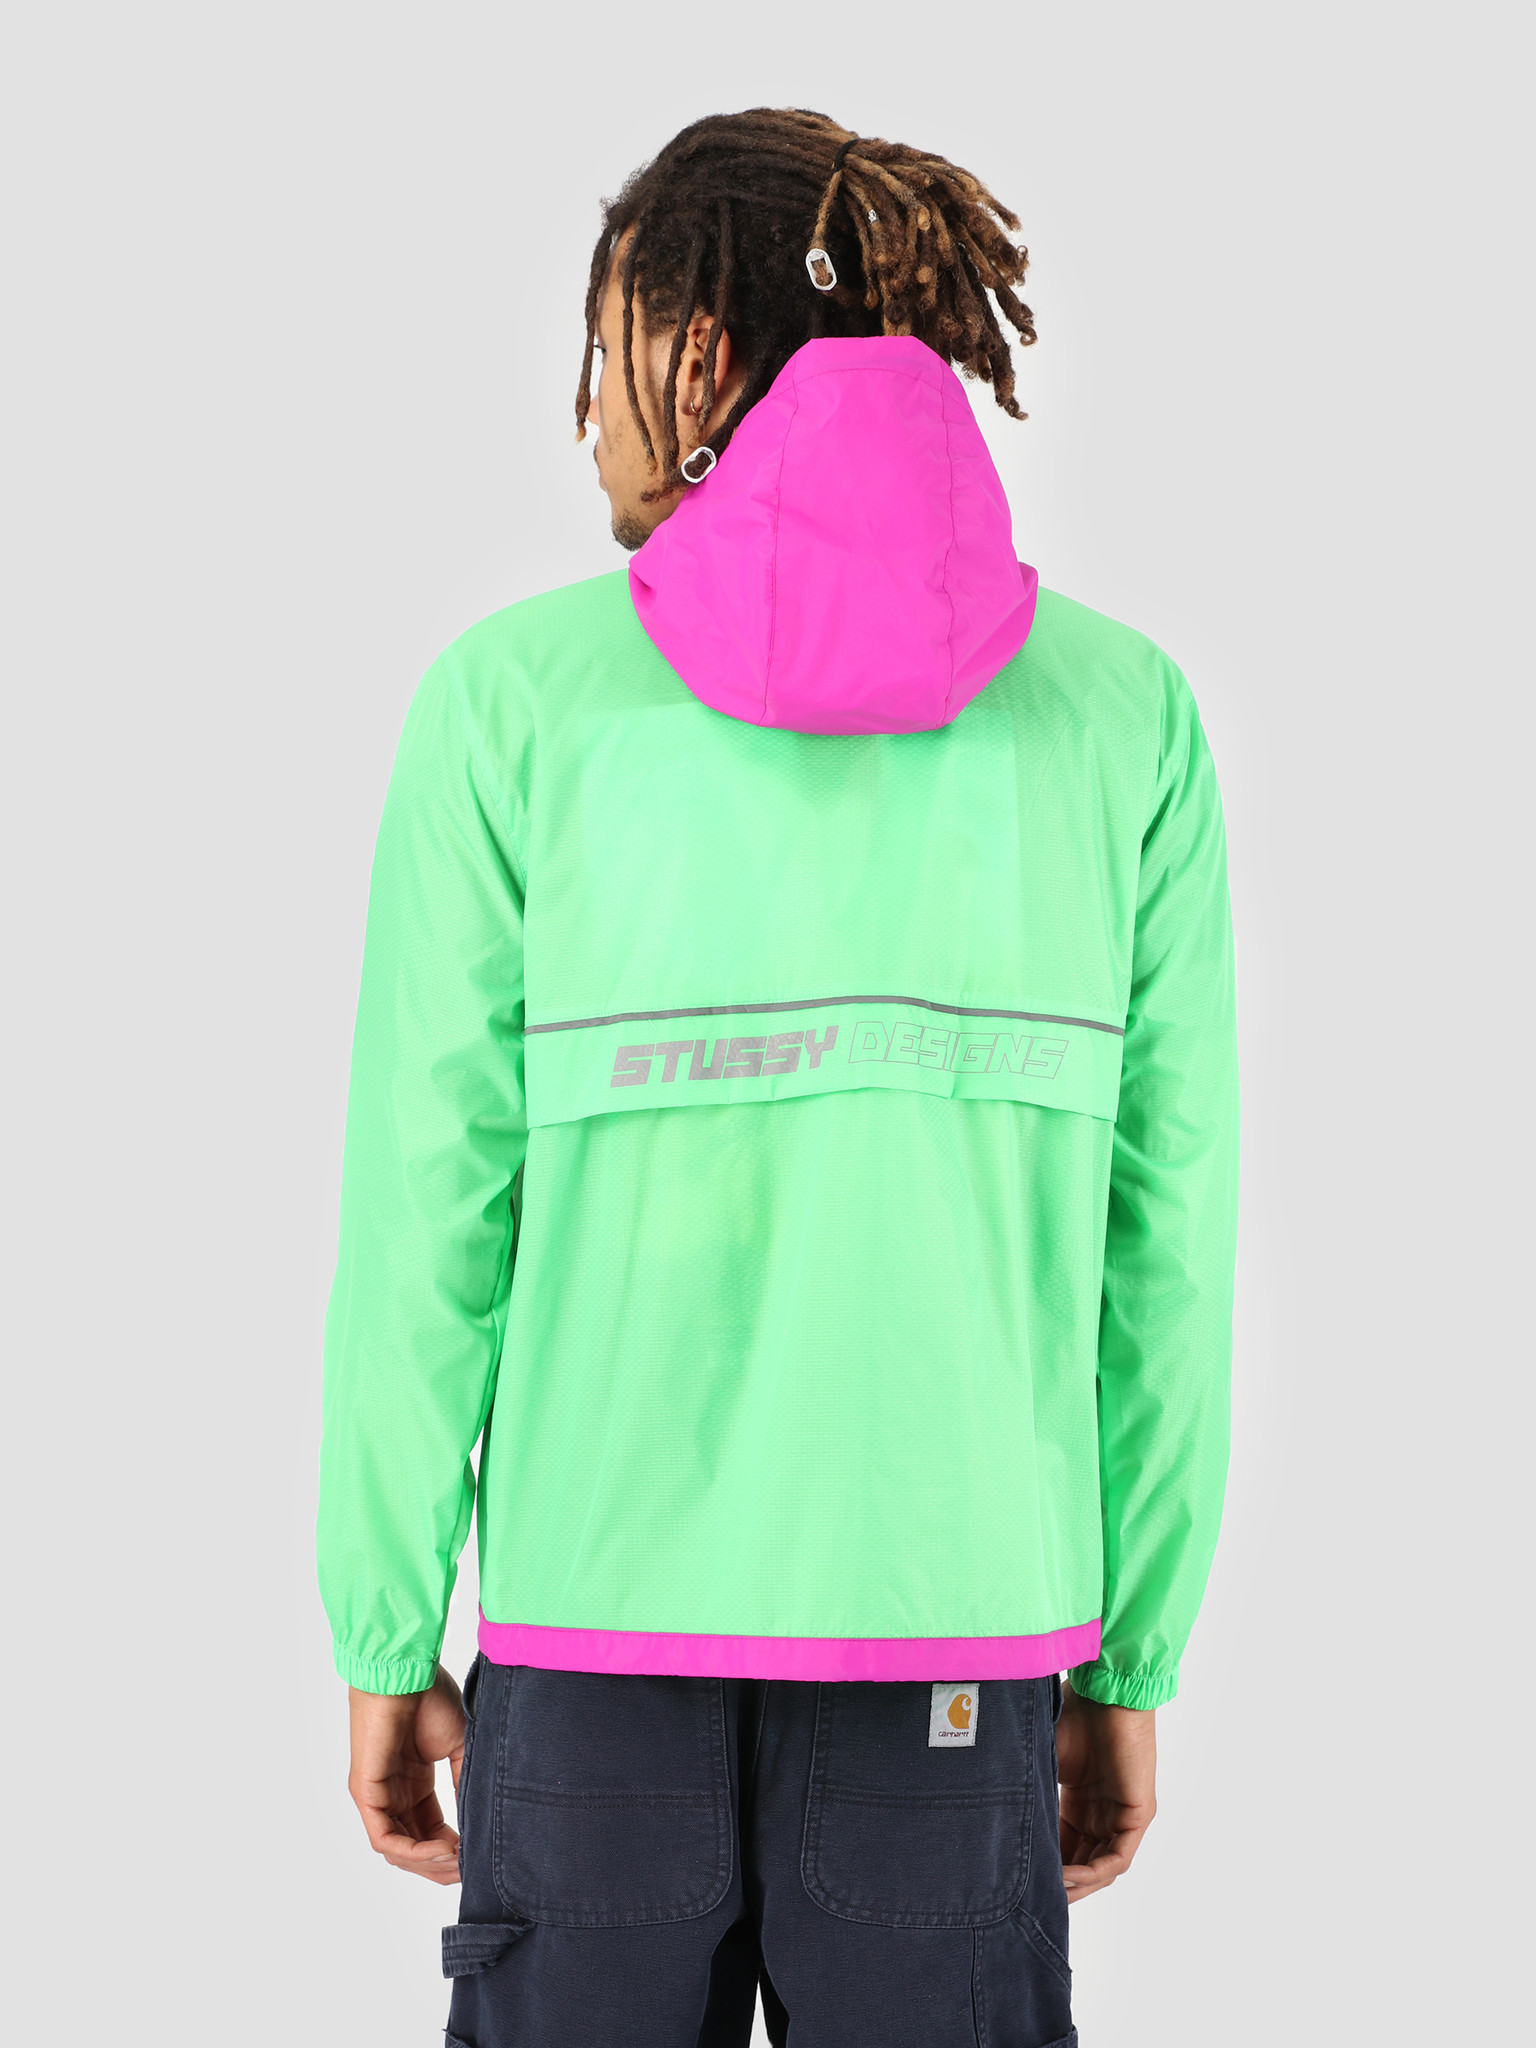 Stussy Stussy Honeycomb Hooded Jacket Green 0401